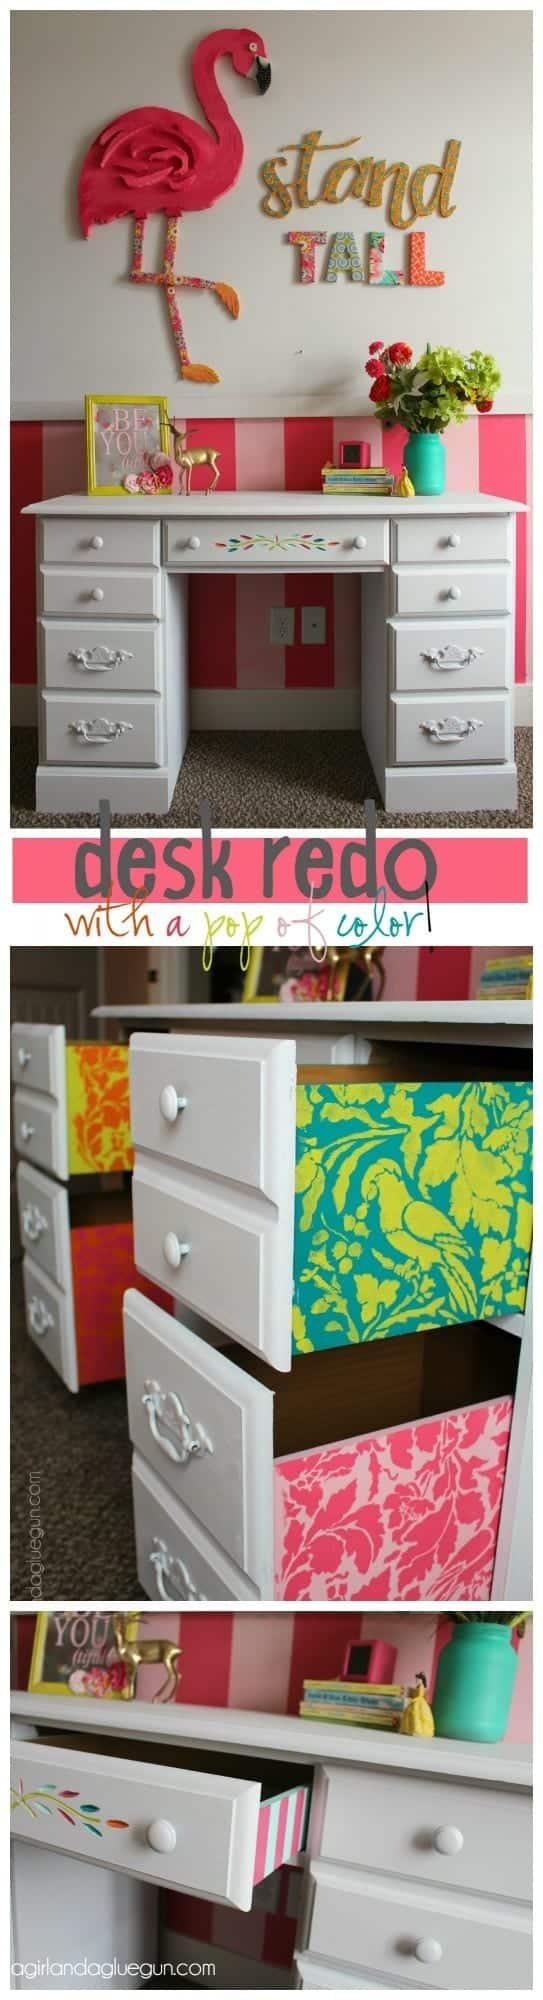 desk-for-little-girls-room-repainted-and-stencil-inside-of-drawers-for-a-pop-of-color--543x2000